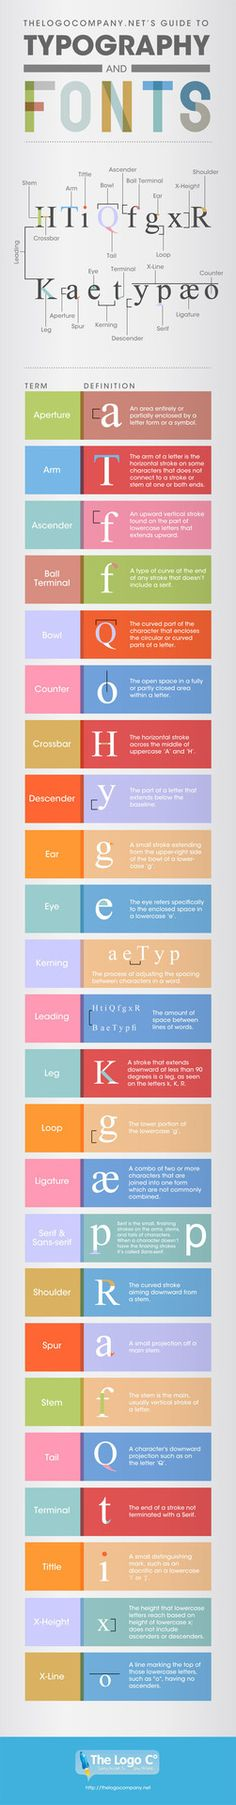 Quick guide on typography